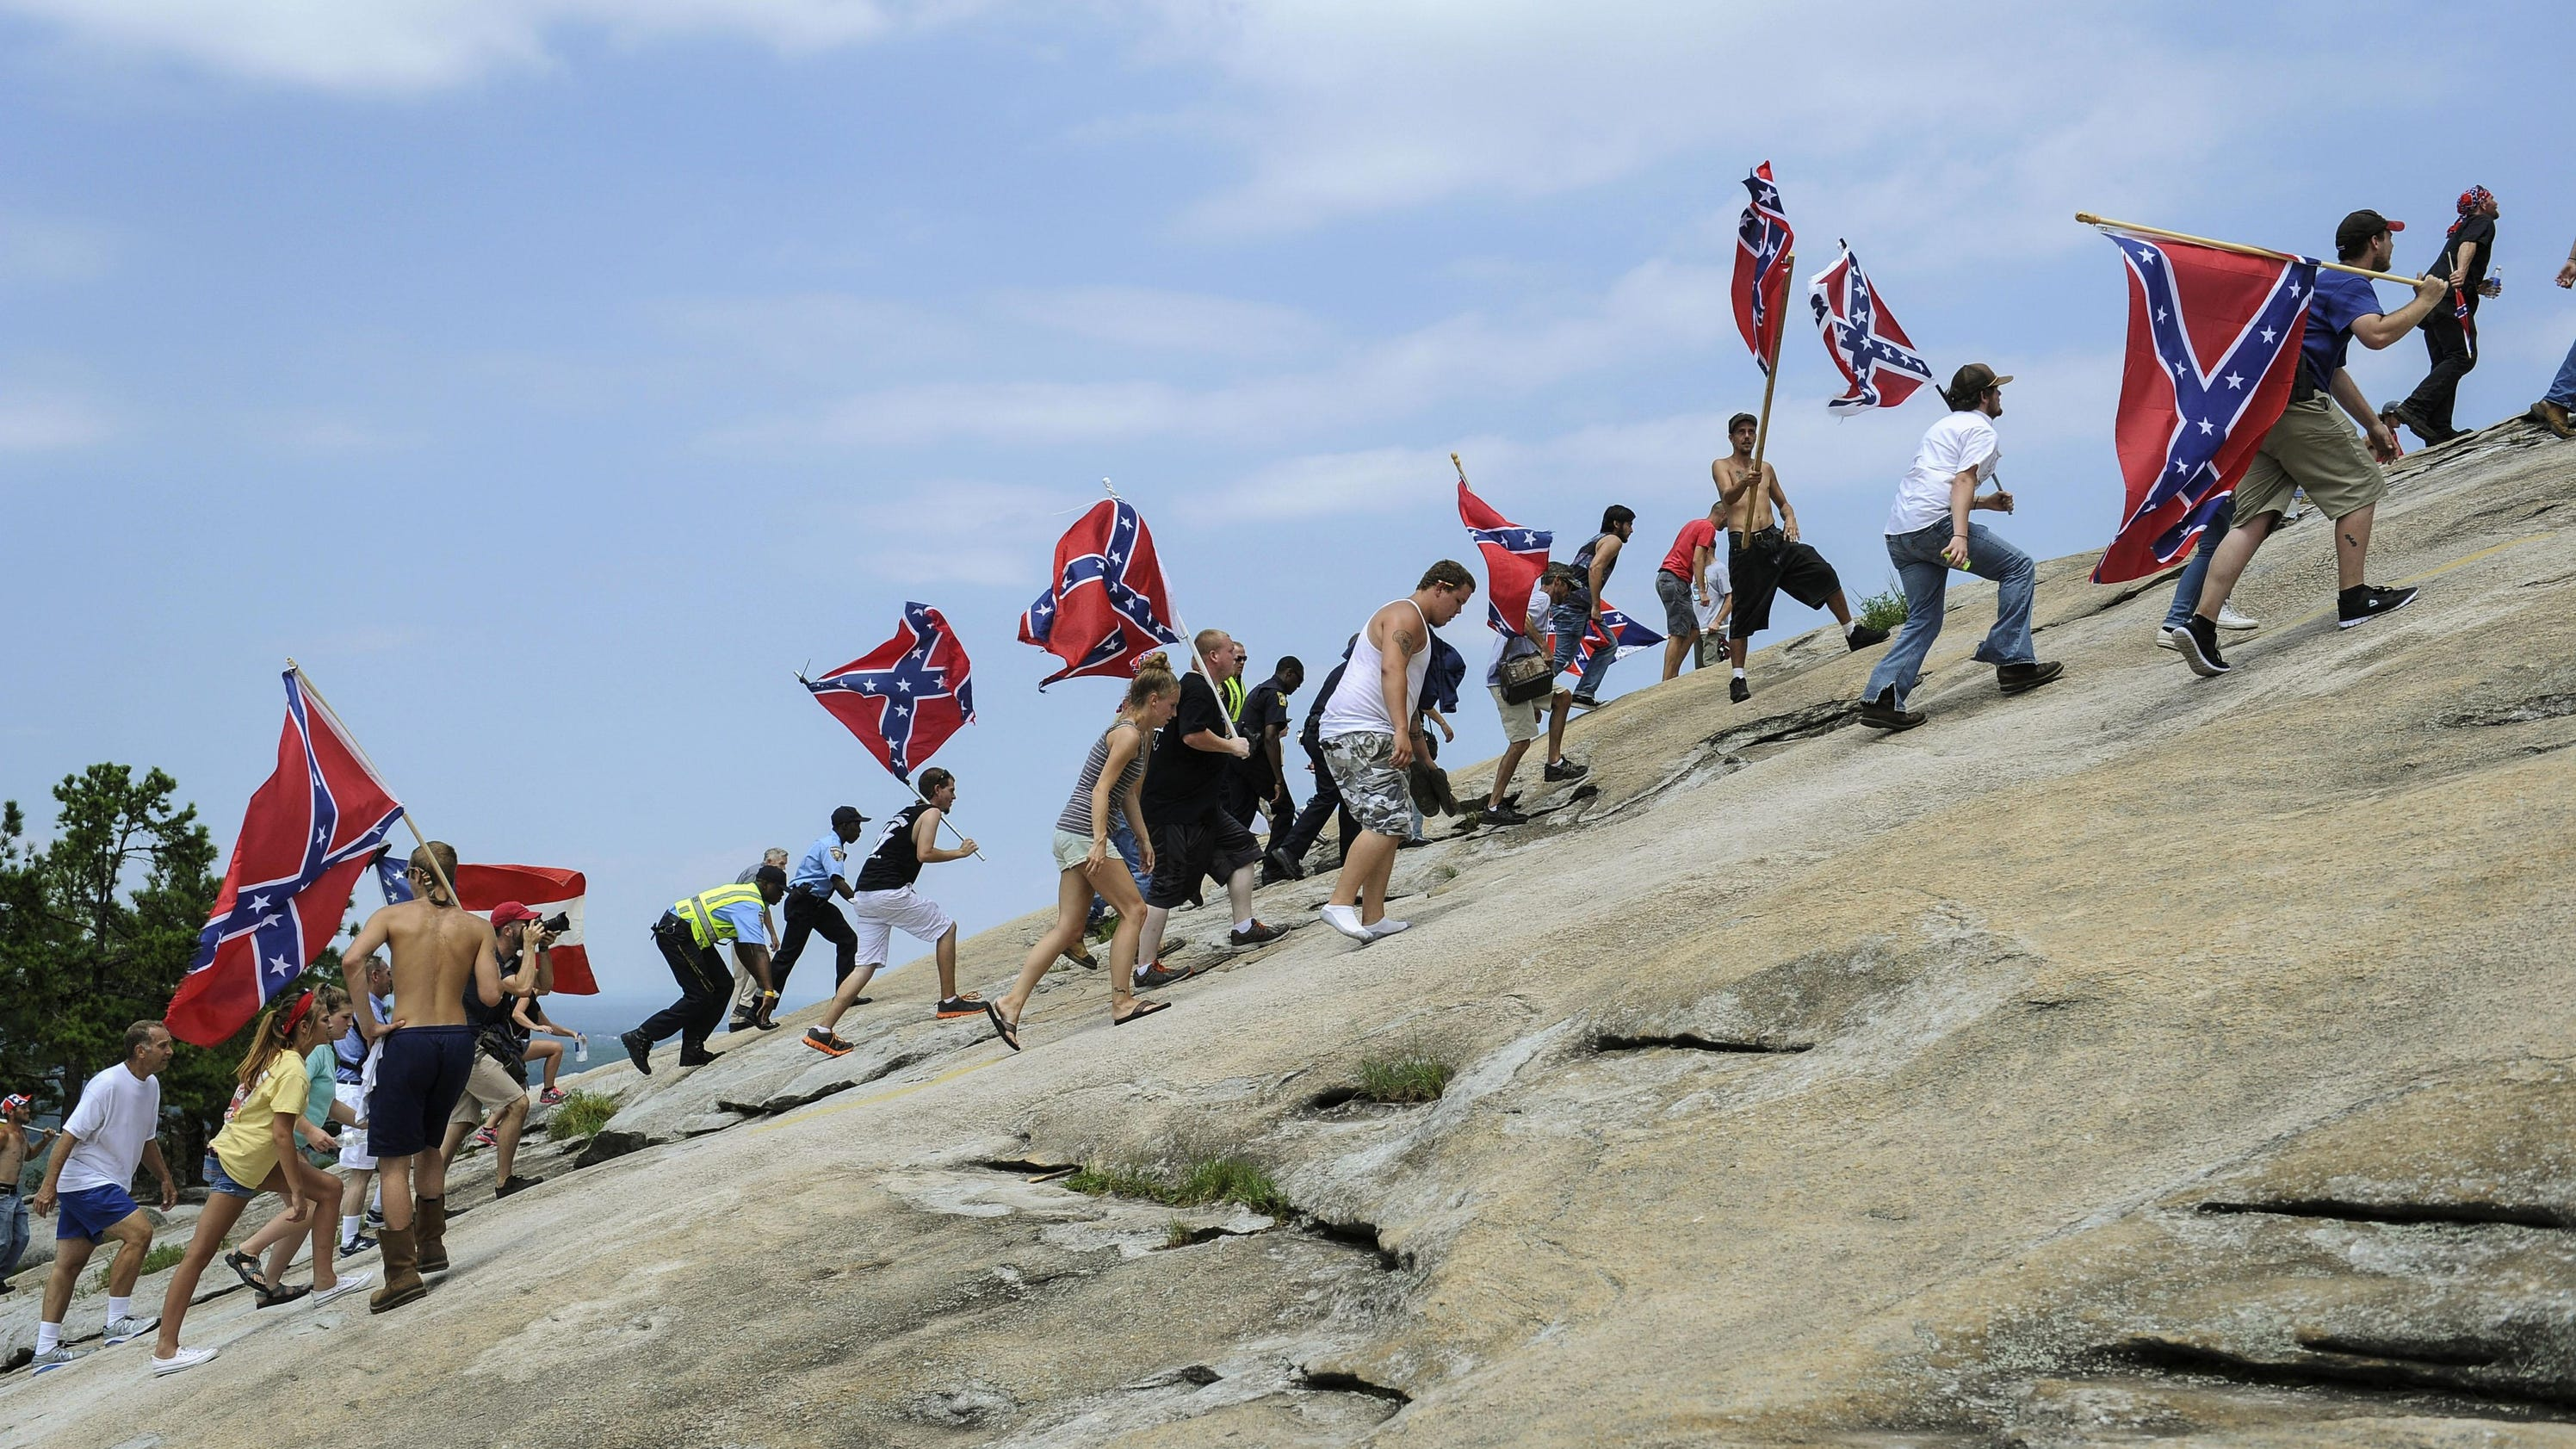 stone mountain chatrooms Get your headlines, email, quotes and more — all in one place.